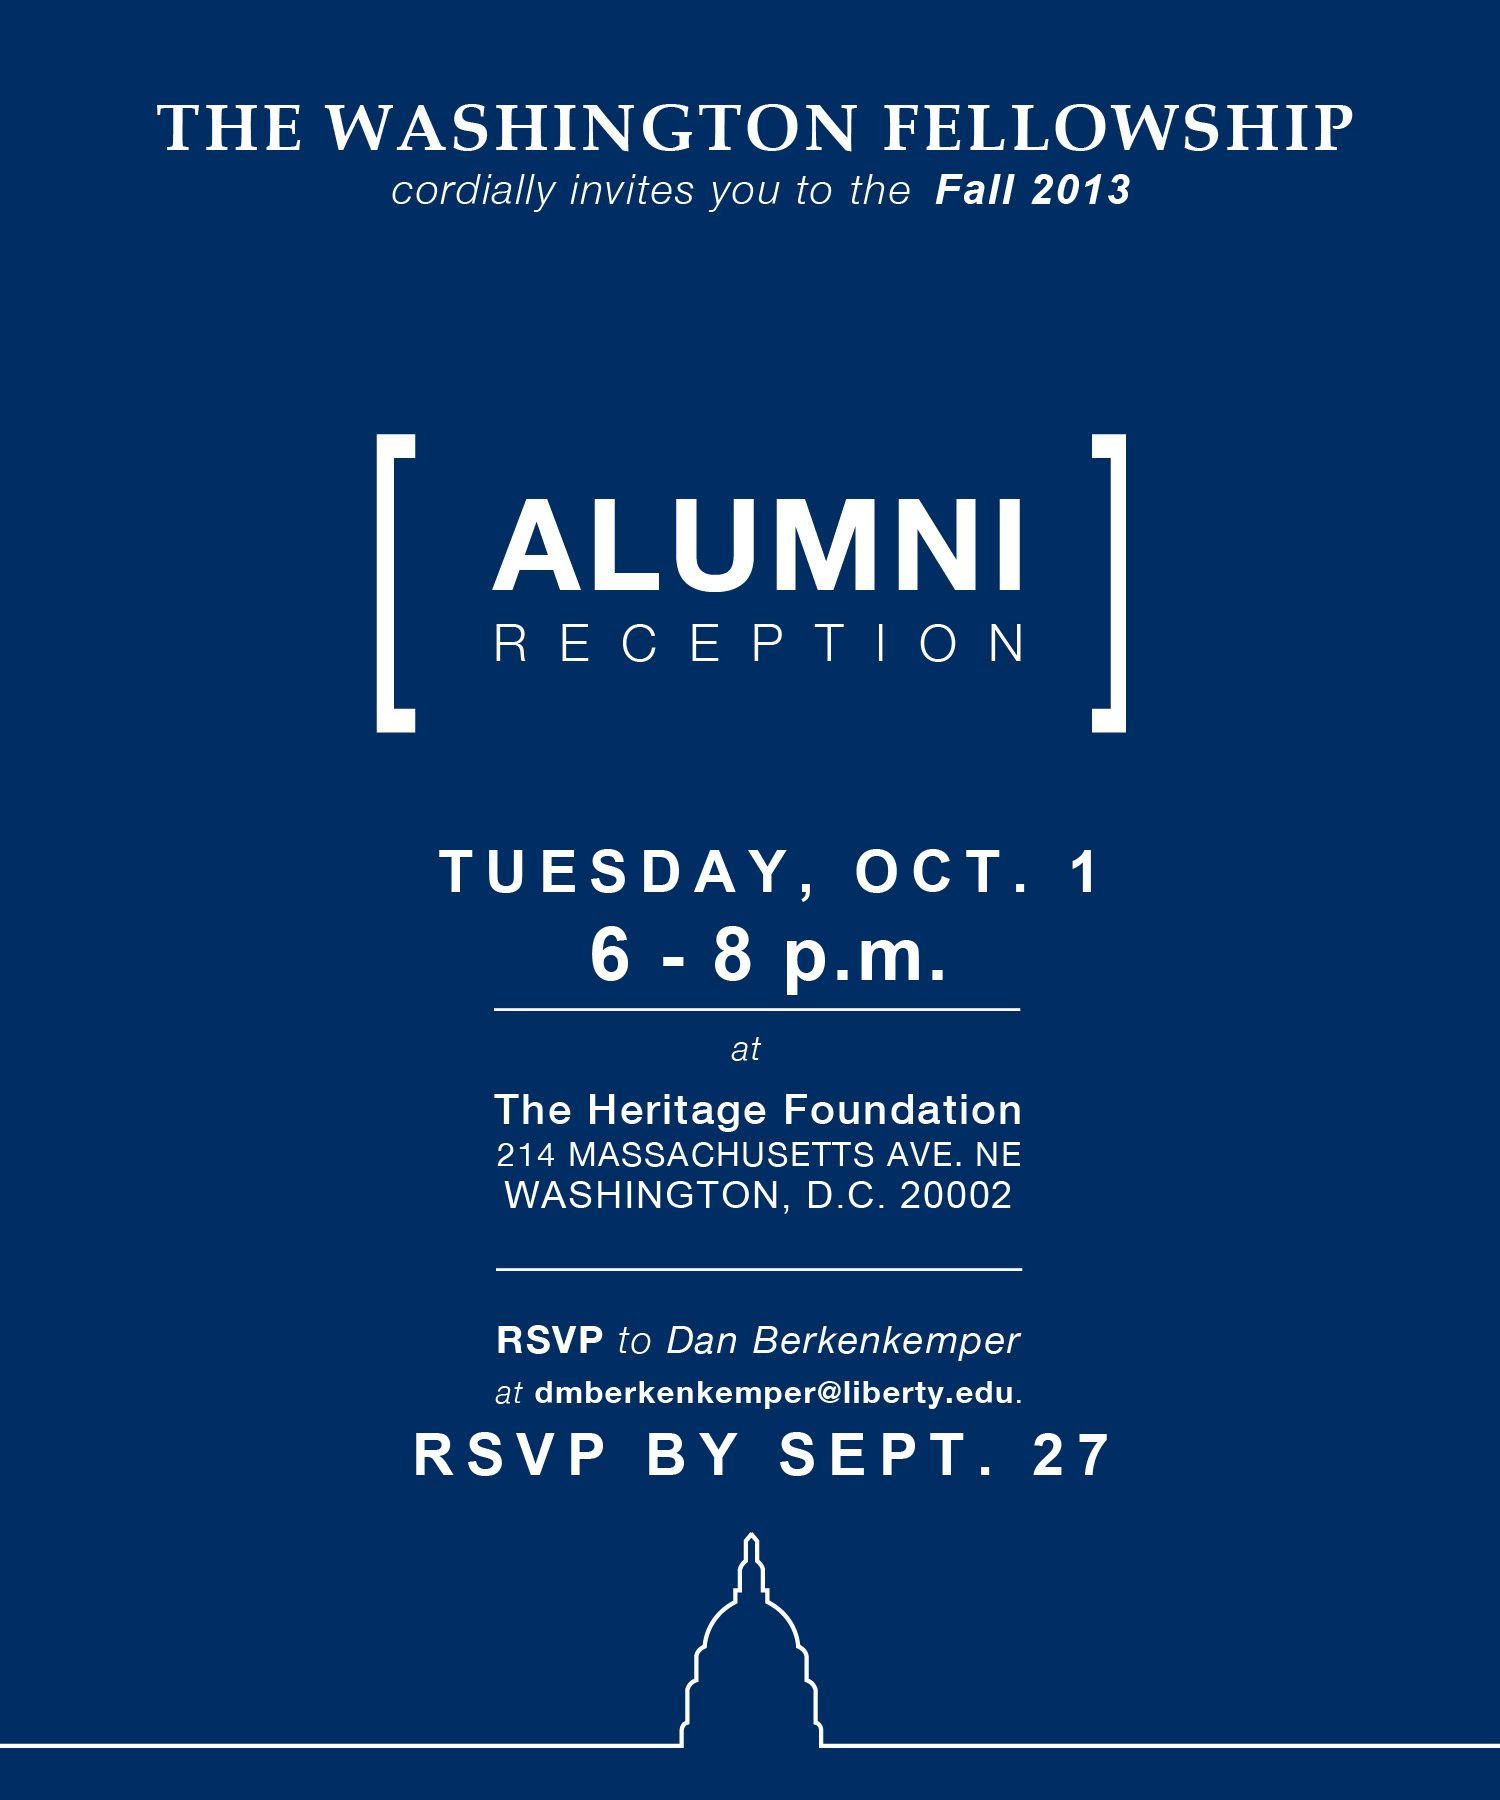 Fall 2013 Alumni Reception Invitation Washington Fellowship Events